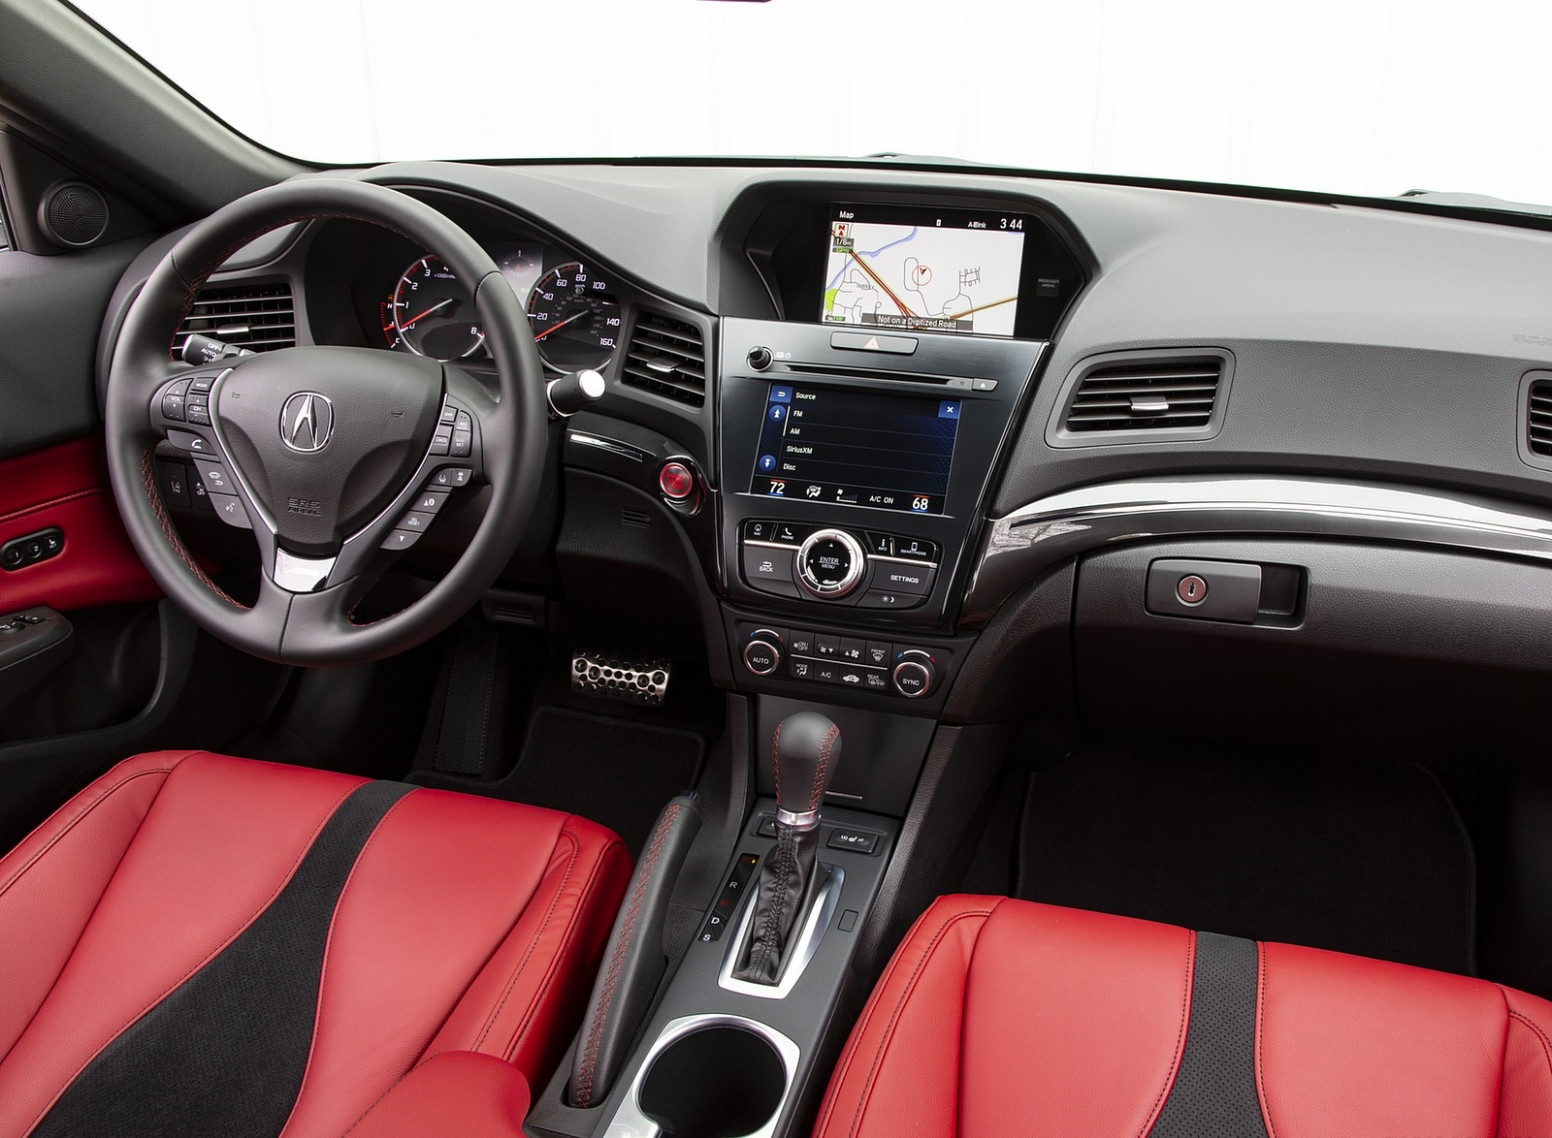 6 Acura ILX A-Spec Interior Wallpapers (6) - NewCarCars - 2020 acura ilx interior